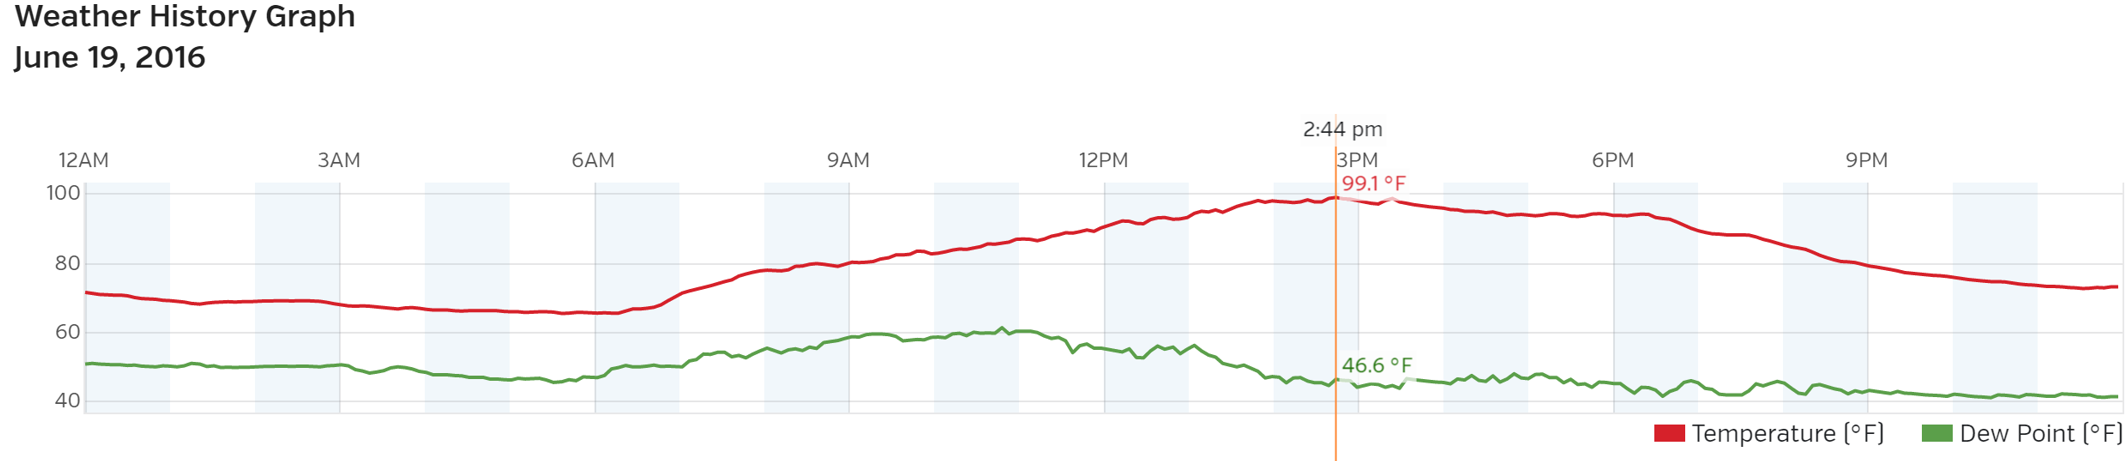 Boulder temperature (red) and dewpoint (green) plot for June 19, 2016 - BoulderCAST Station